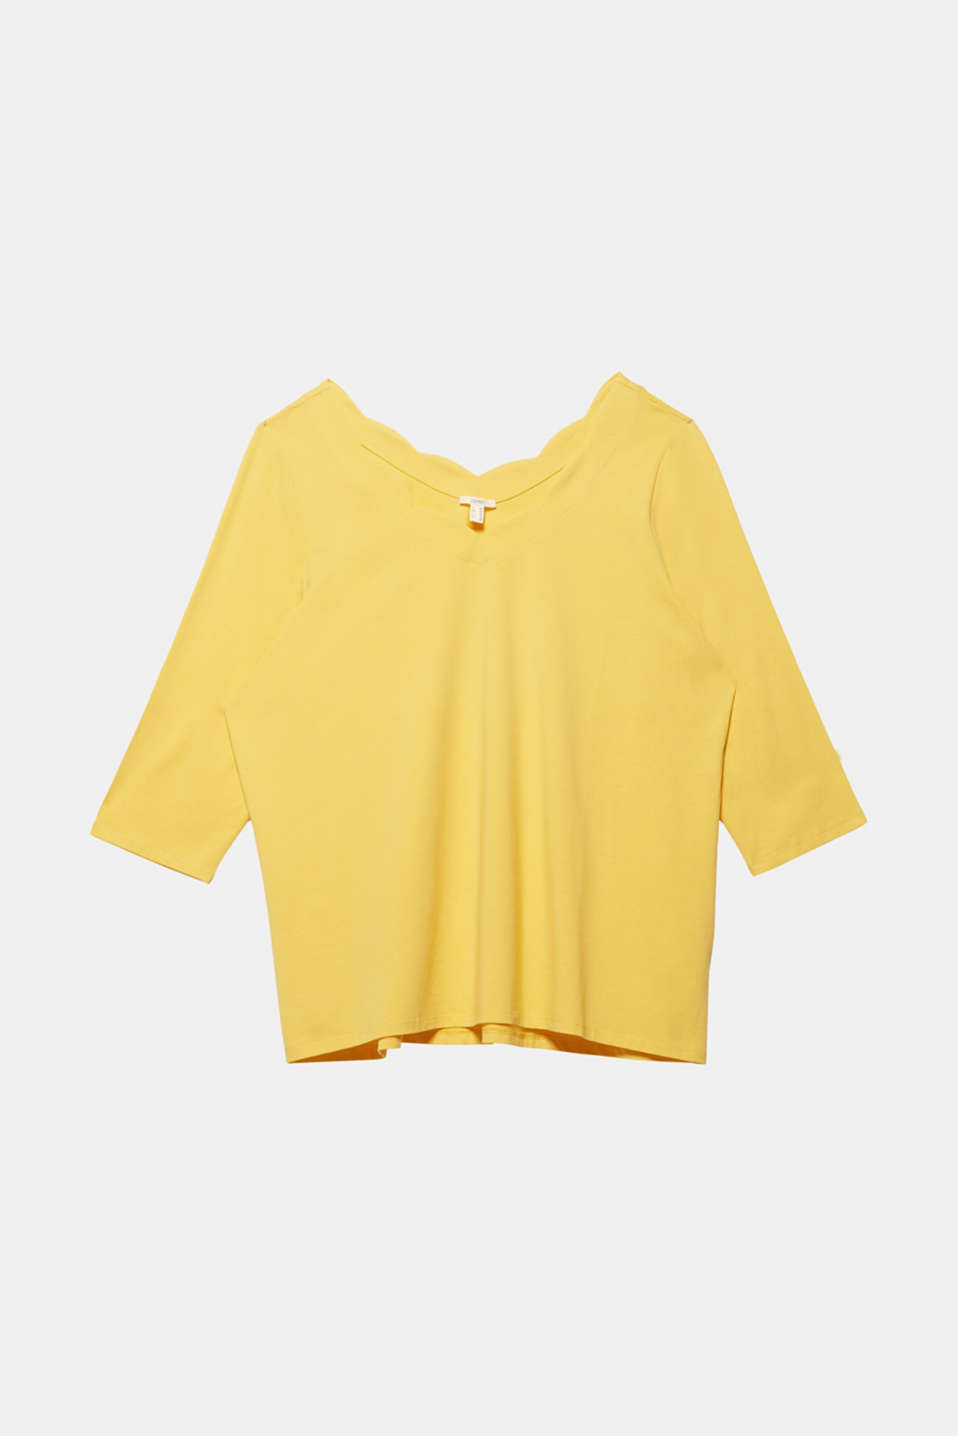 CURVY top with wavy details, YELLOW 3, detail image number 5